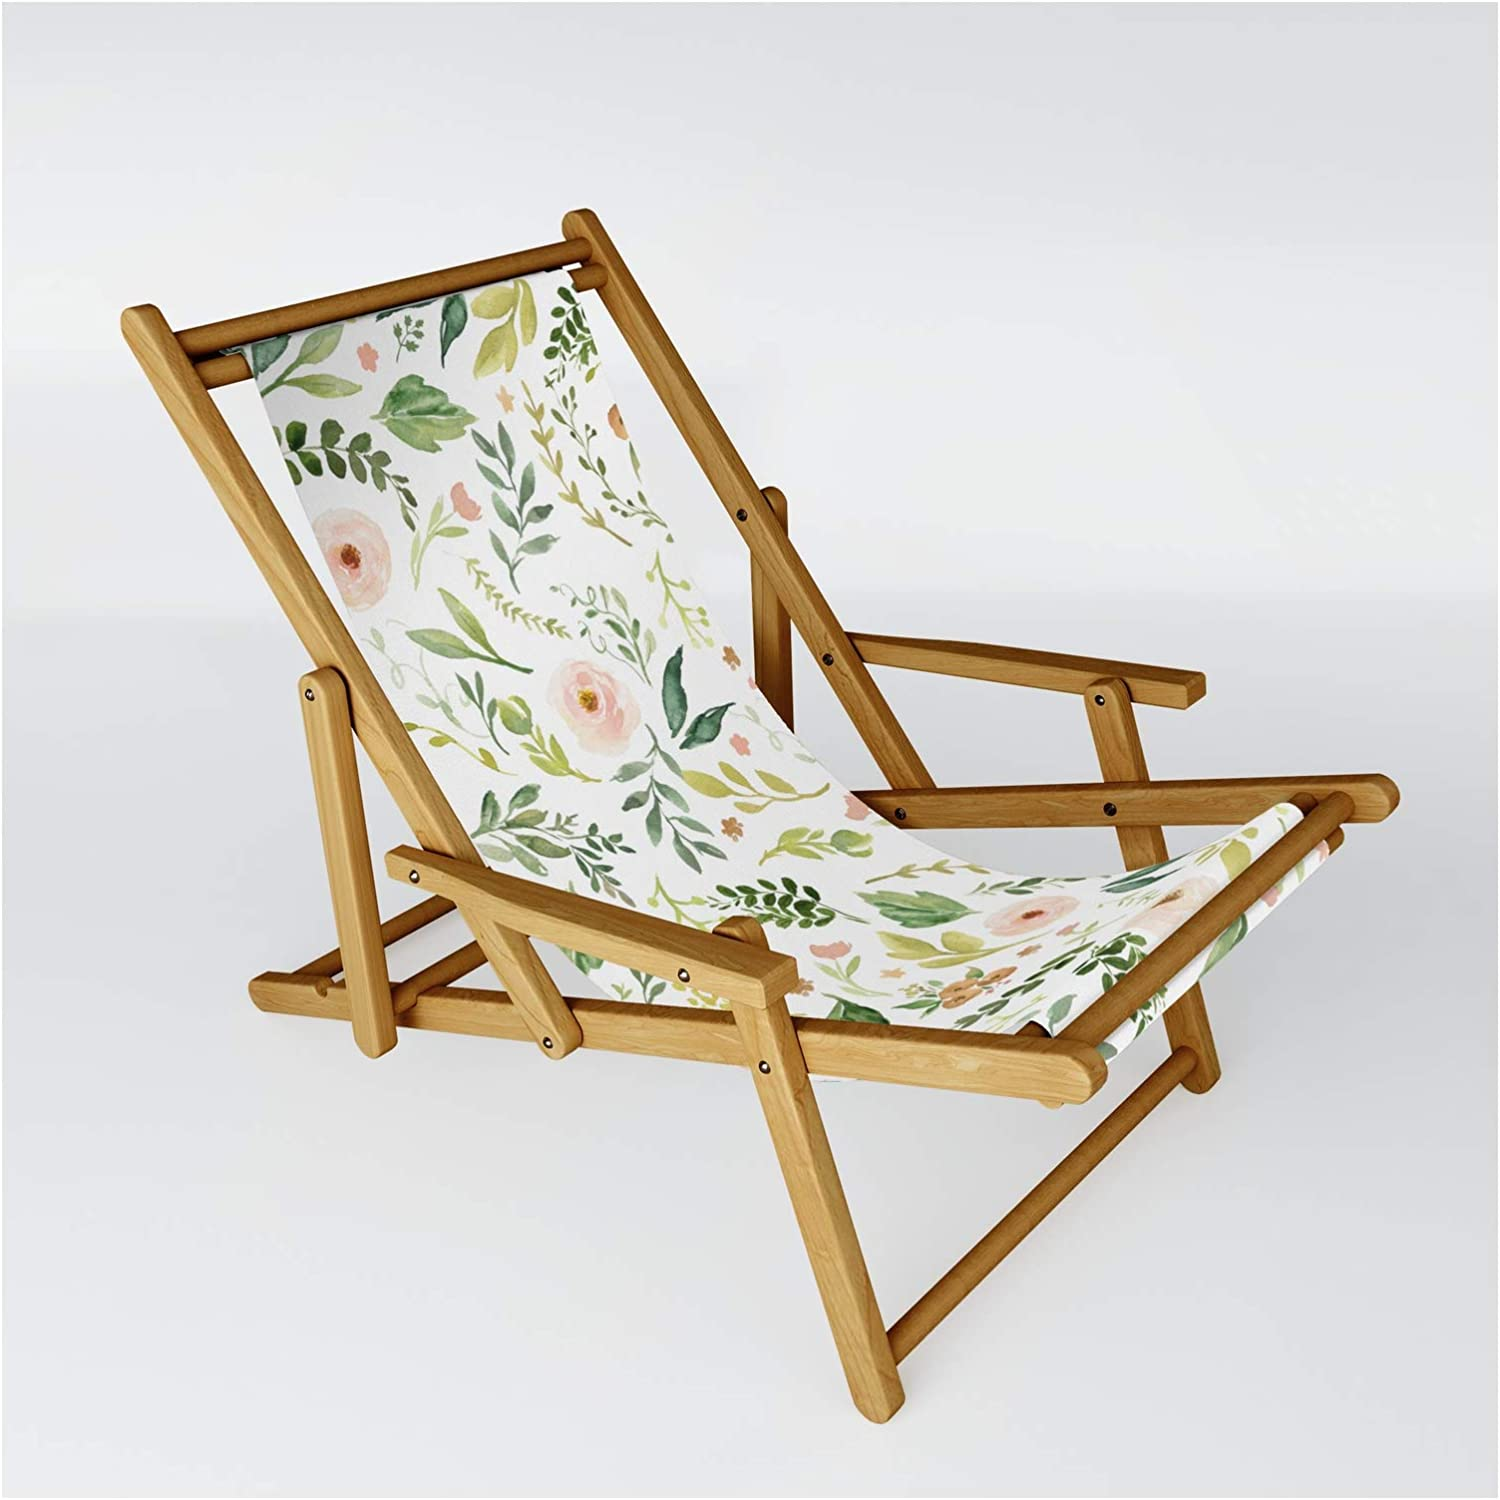 Society6 Botanical Spring Flowers by on Chair Japan Maker Max 65% OFF New Sling Junkydotcom